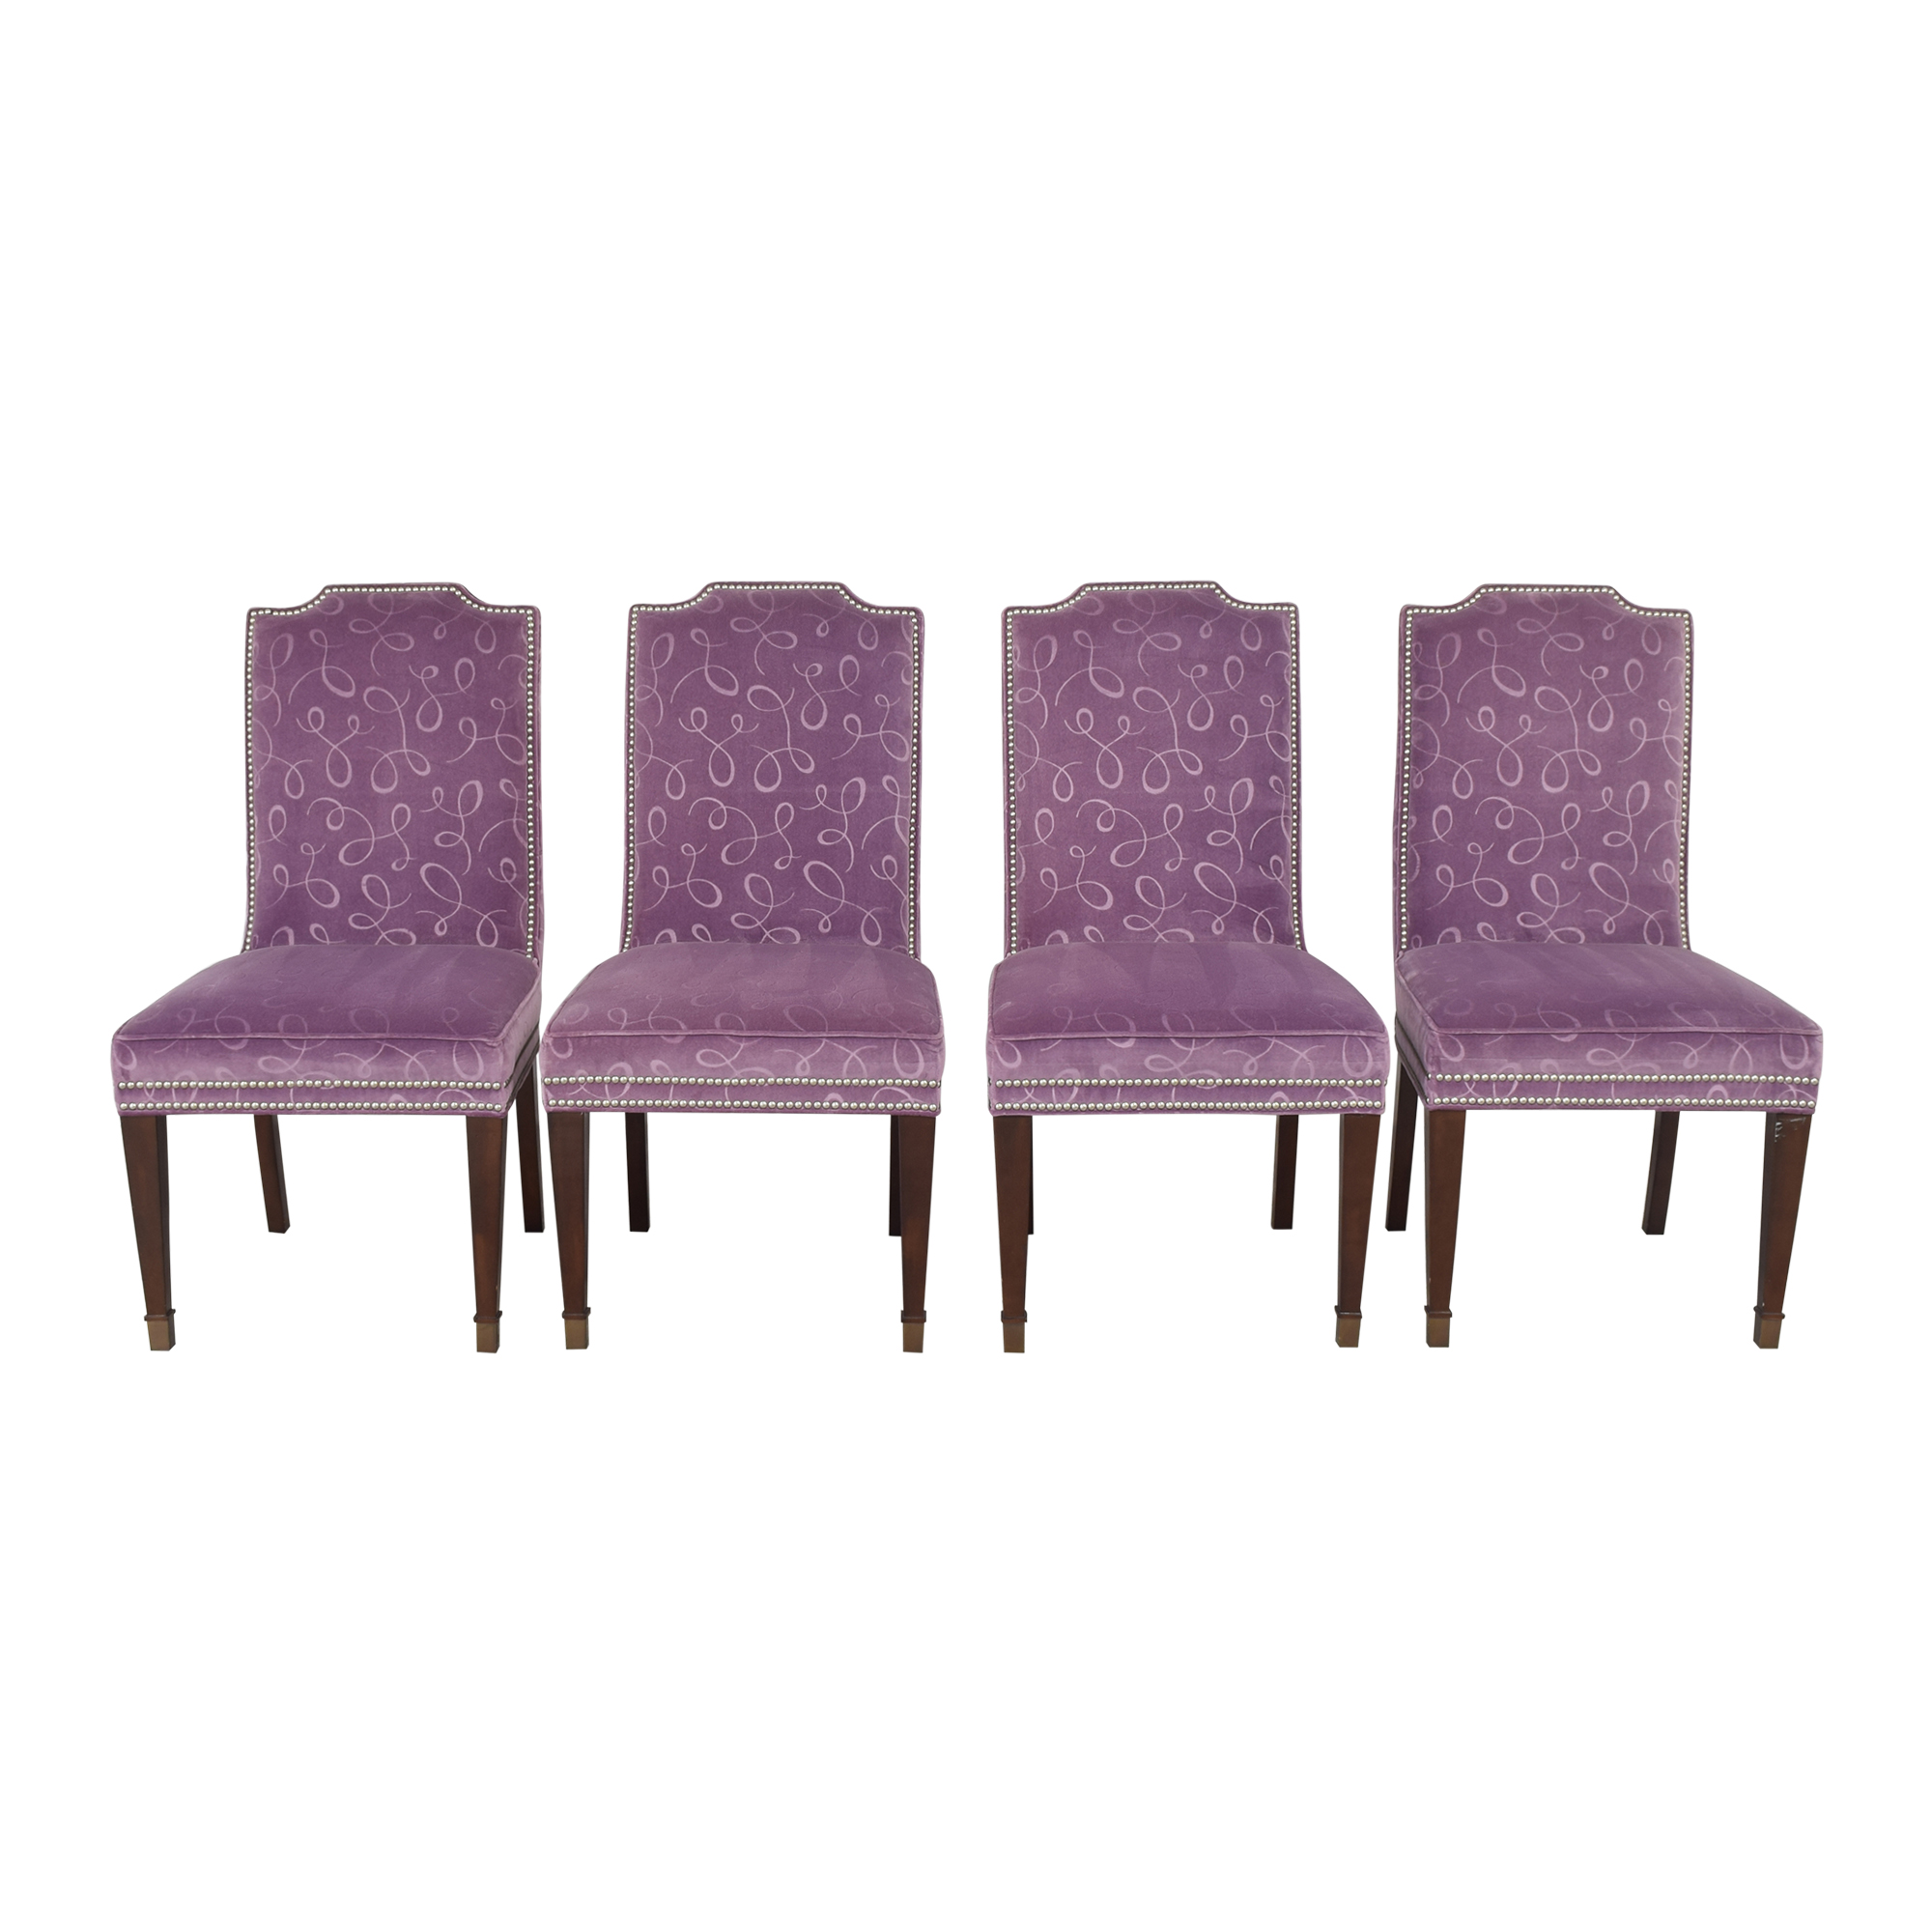 Vanguard Furniture by Michael Weiss Travis Dining Side Chairs / Chairs